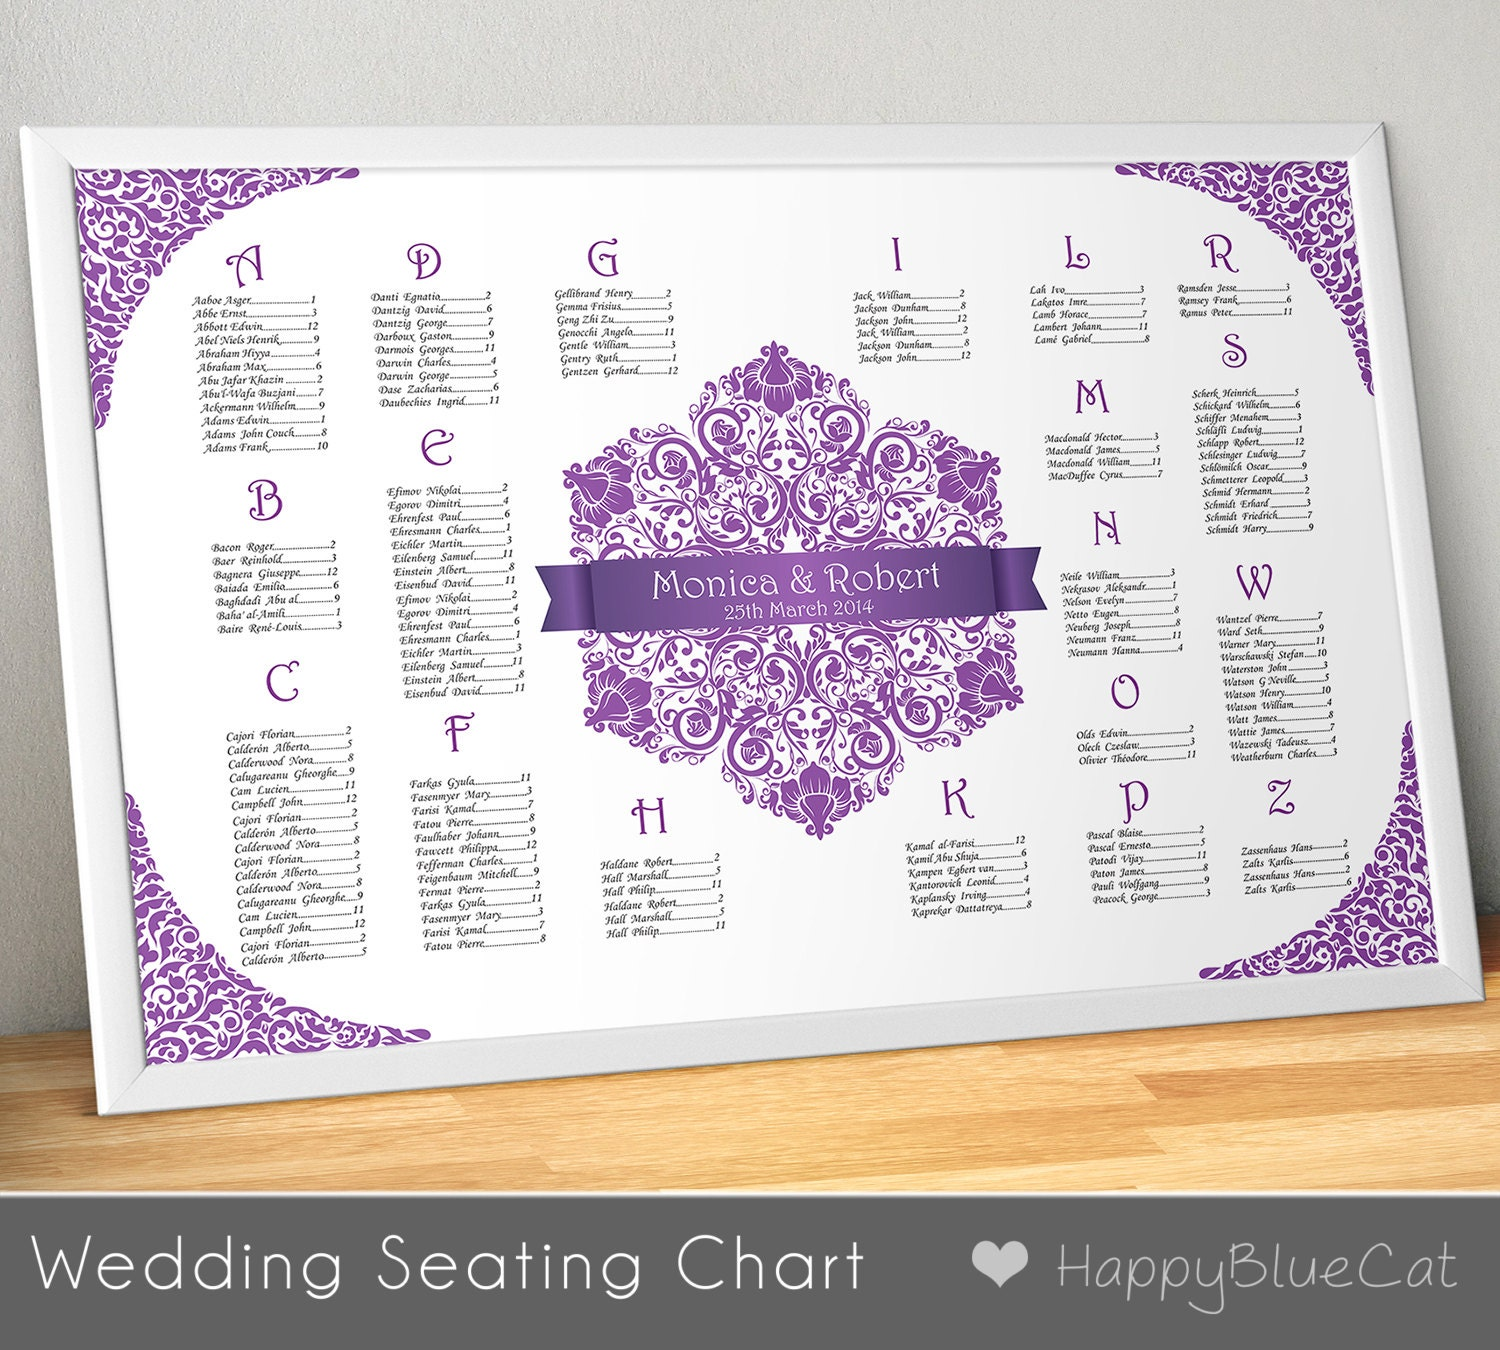 Printable Seating Chart For Wedding Reception: Wedding Seating Chart FREE RUSH SERVICE Floral Purple